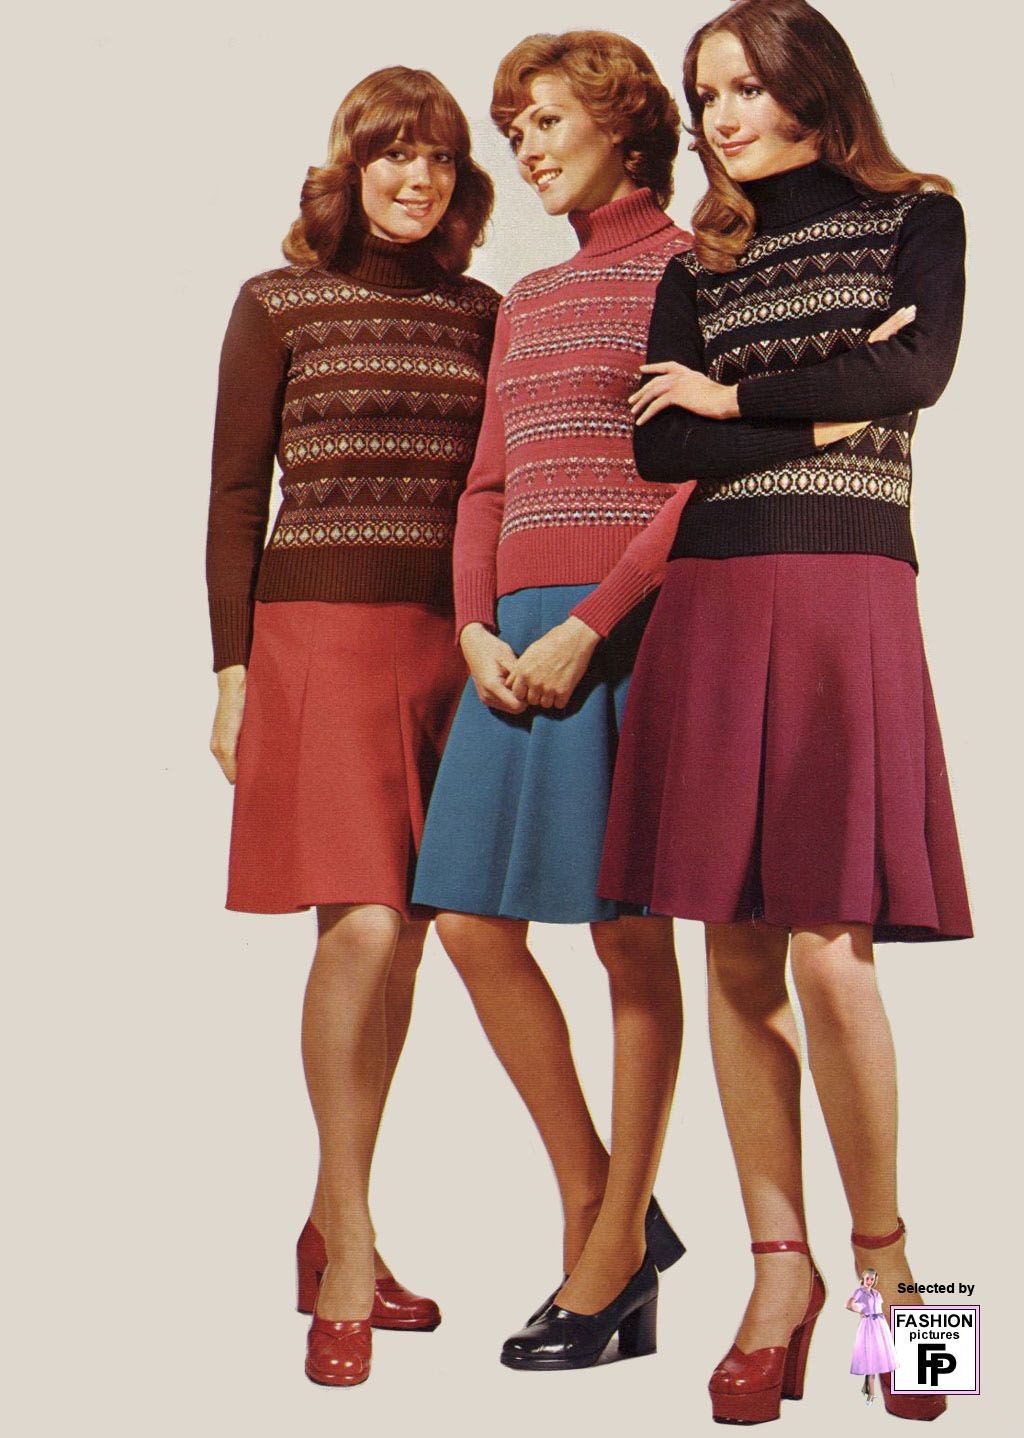 1970s Fashion Love These Skirts Vintage Fashion Pinterest 1970s Fashion Women And Fashion